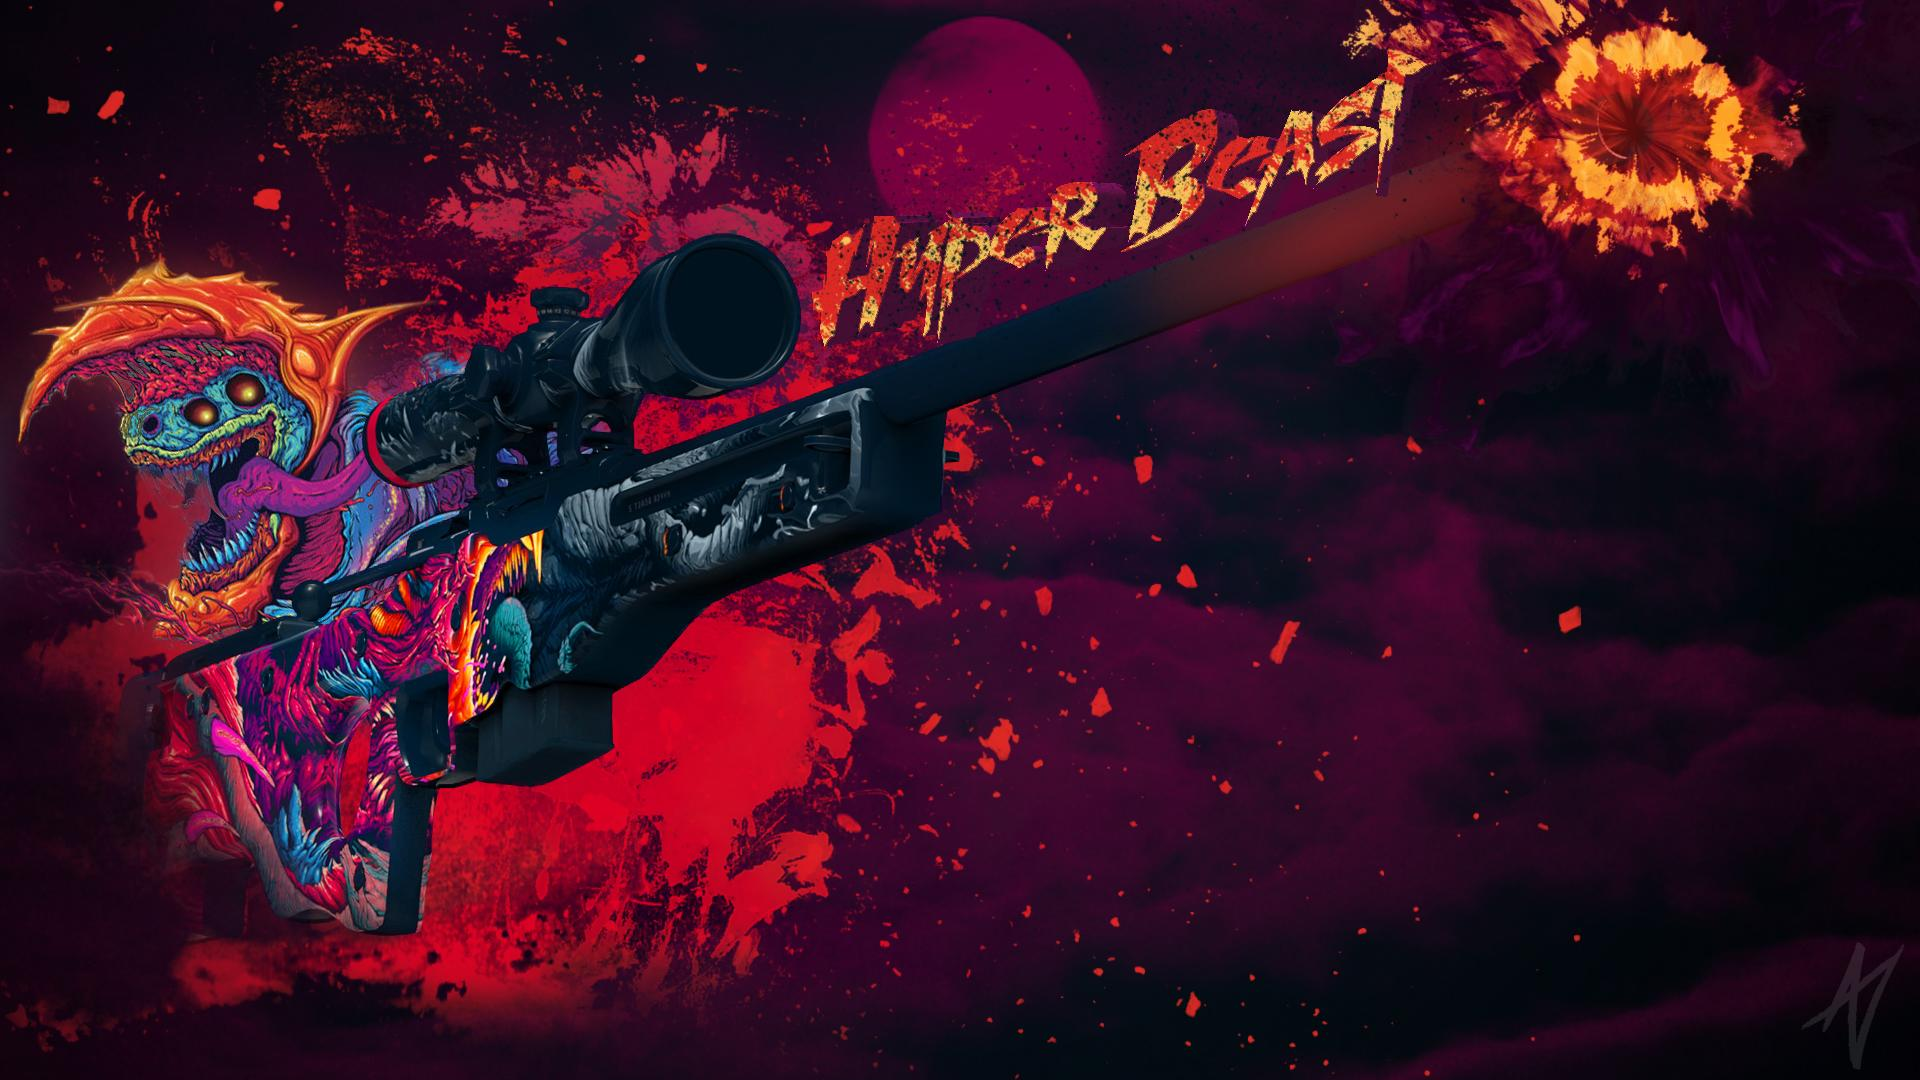 Awp Hyper Beast Created By Doud Csgo Wallpapers